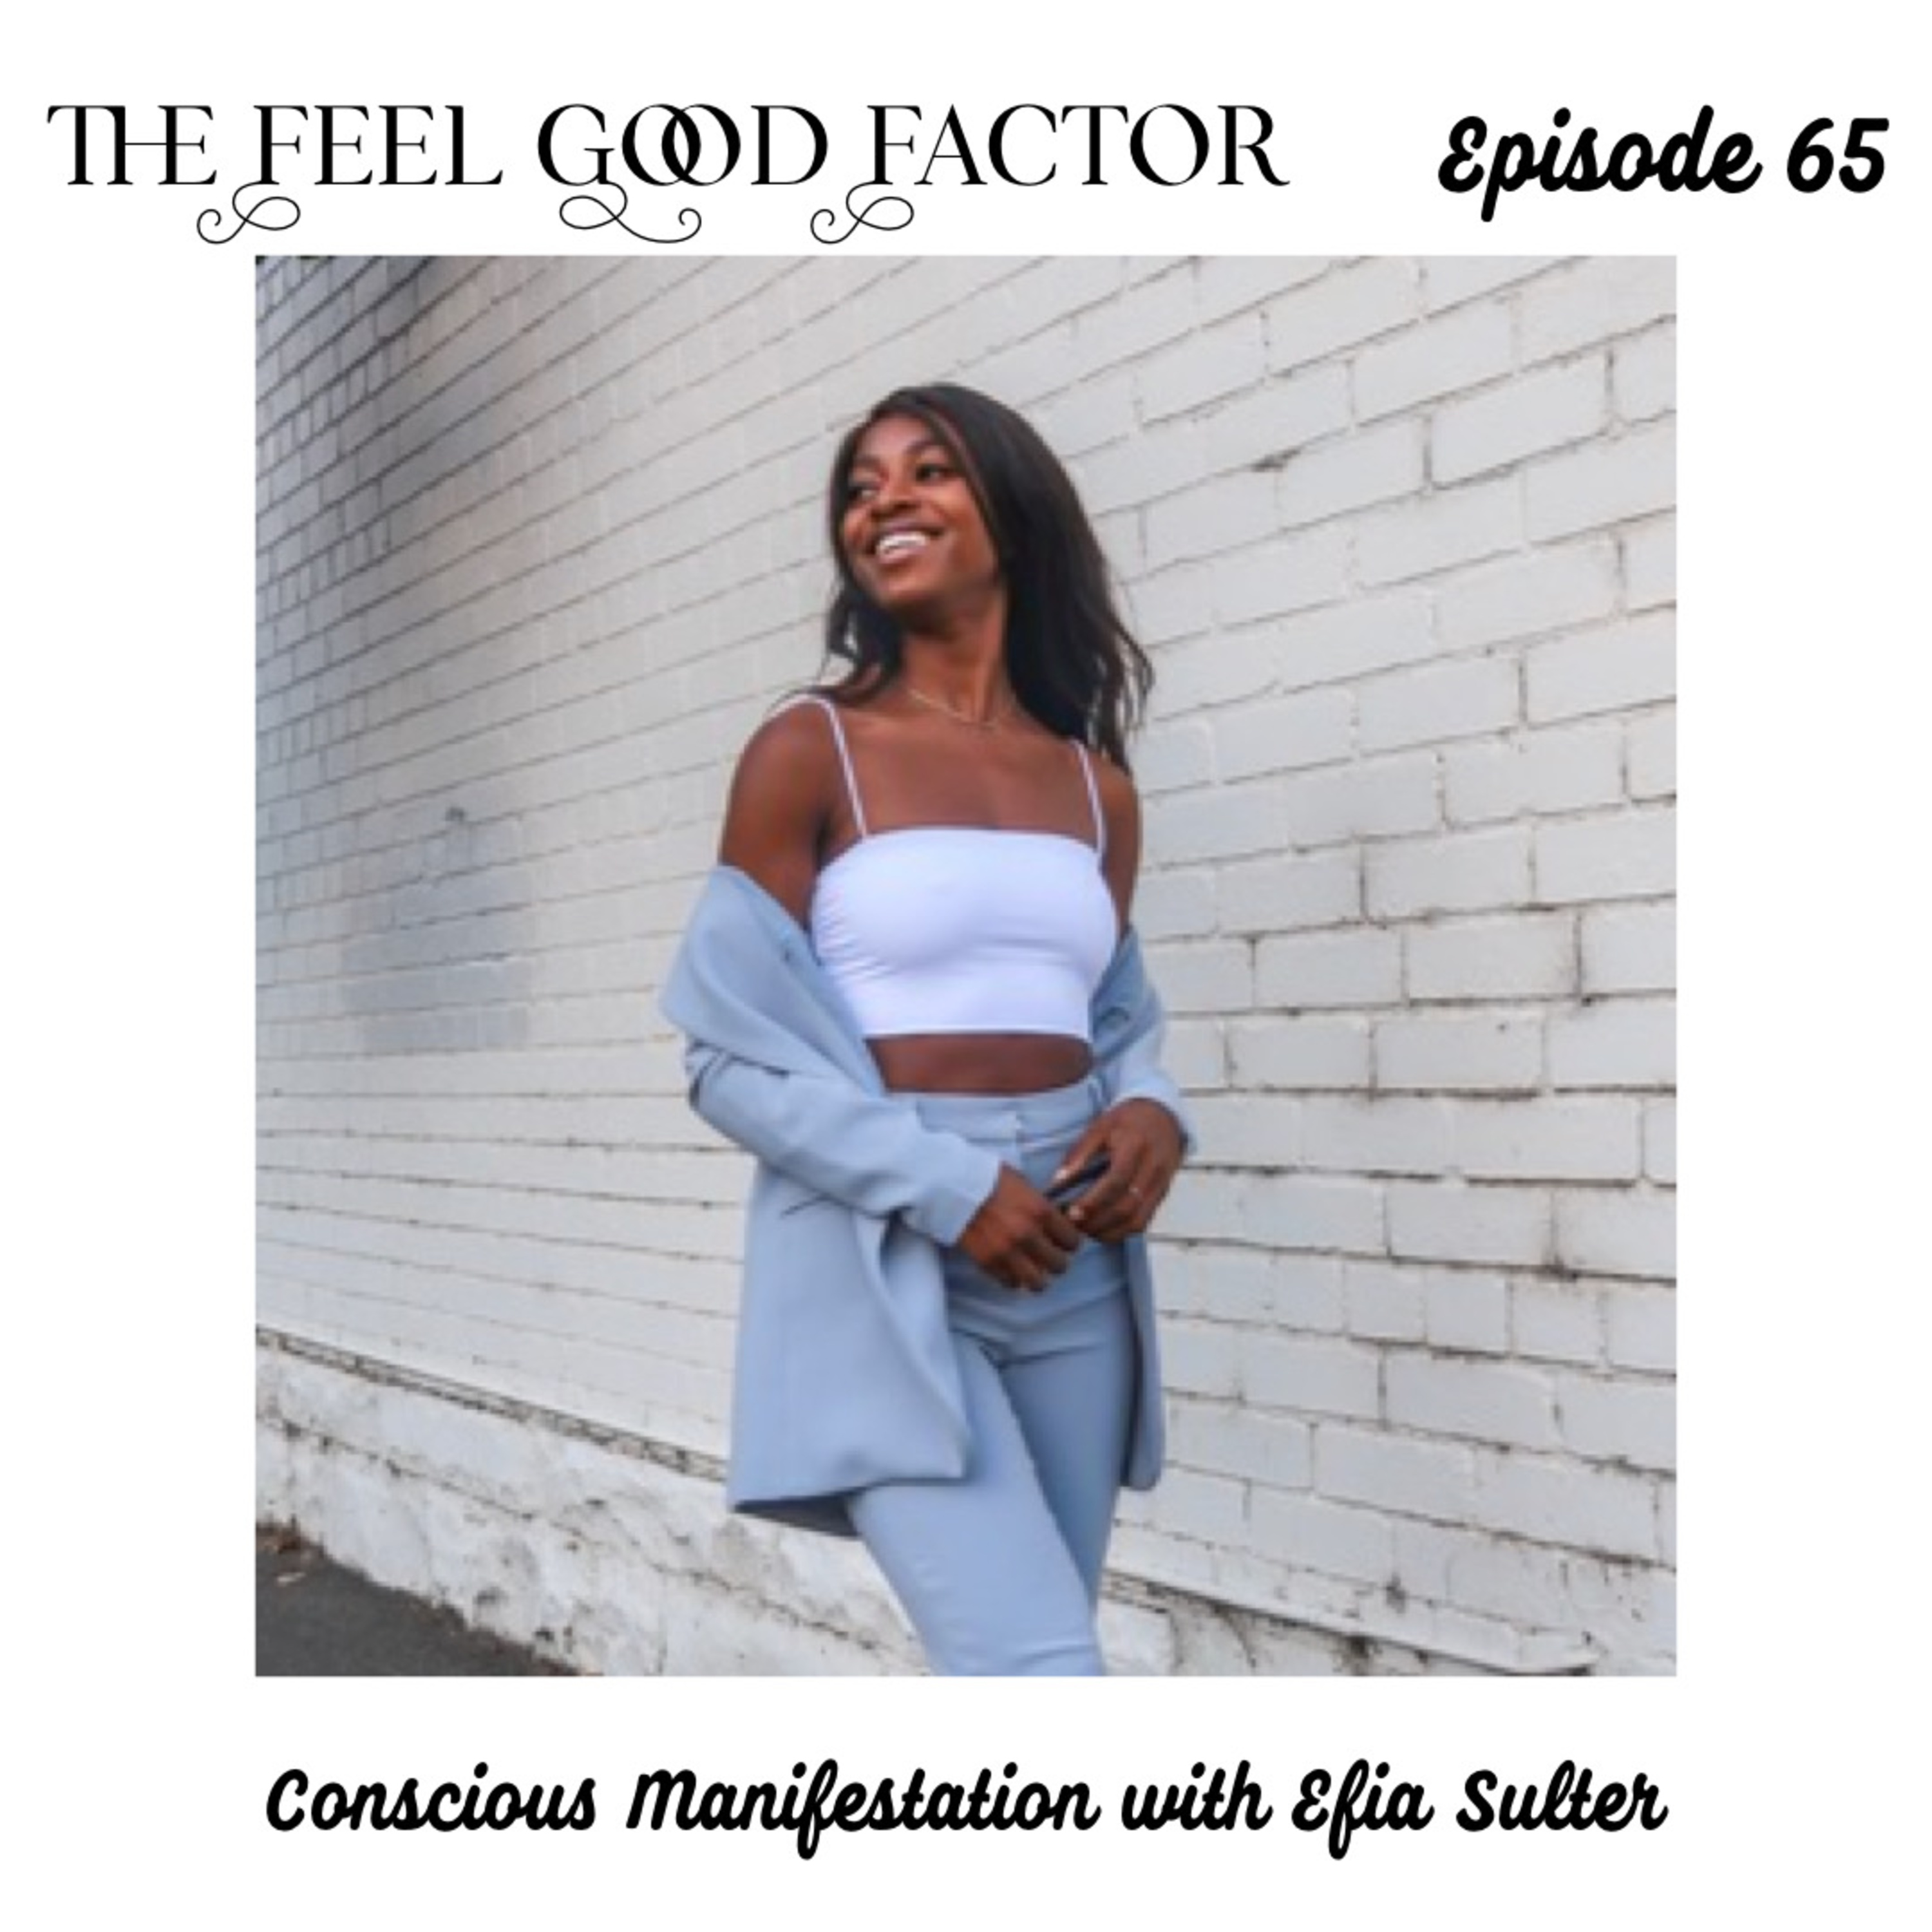 65: Conscious Manifestation with Efia Sulter